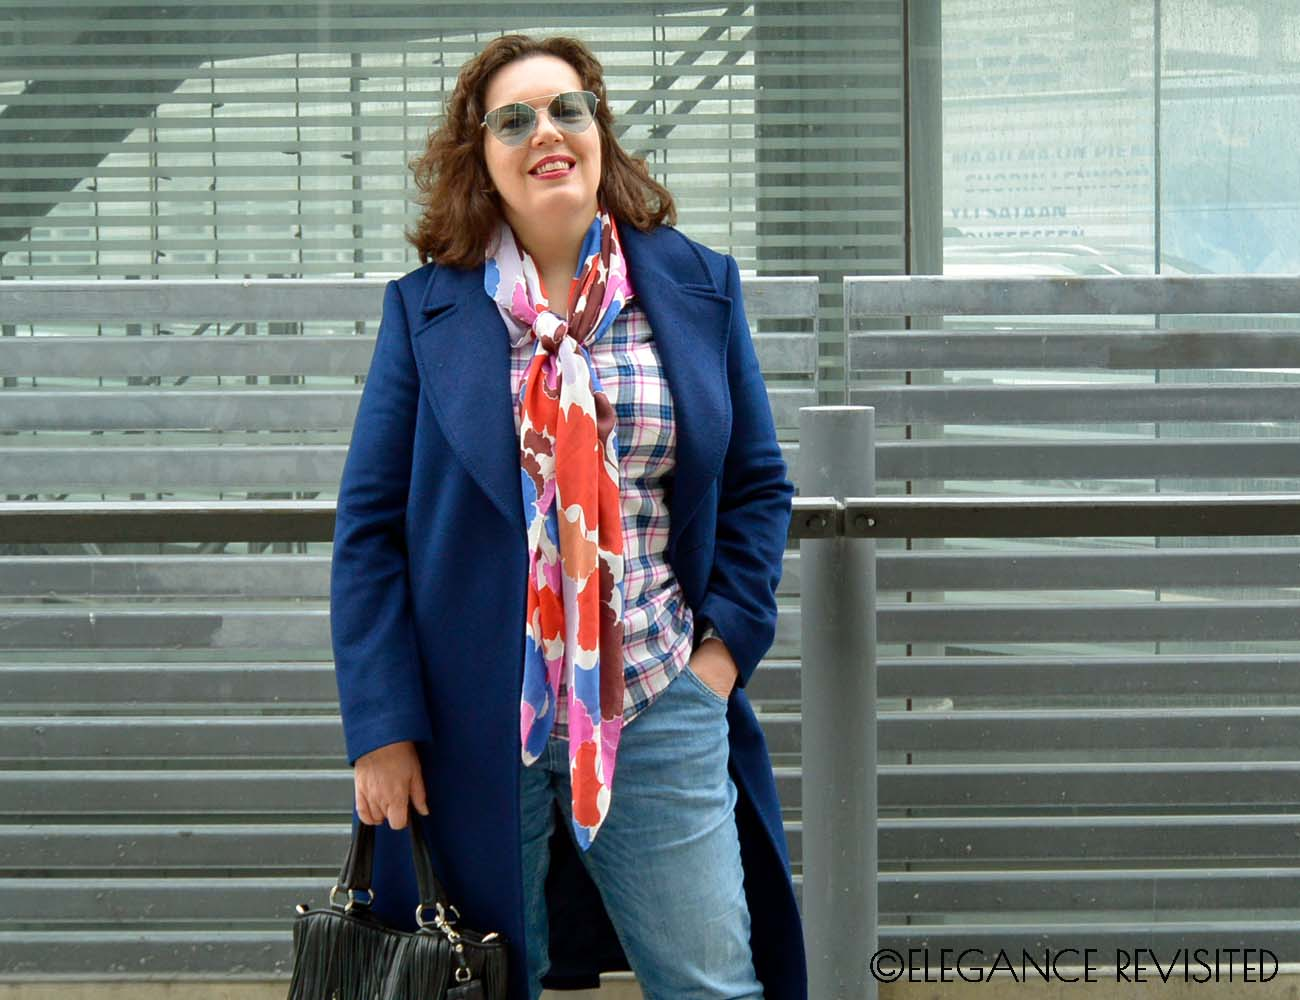 mixing florals and plaid